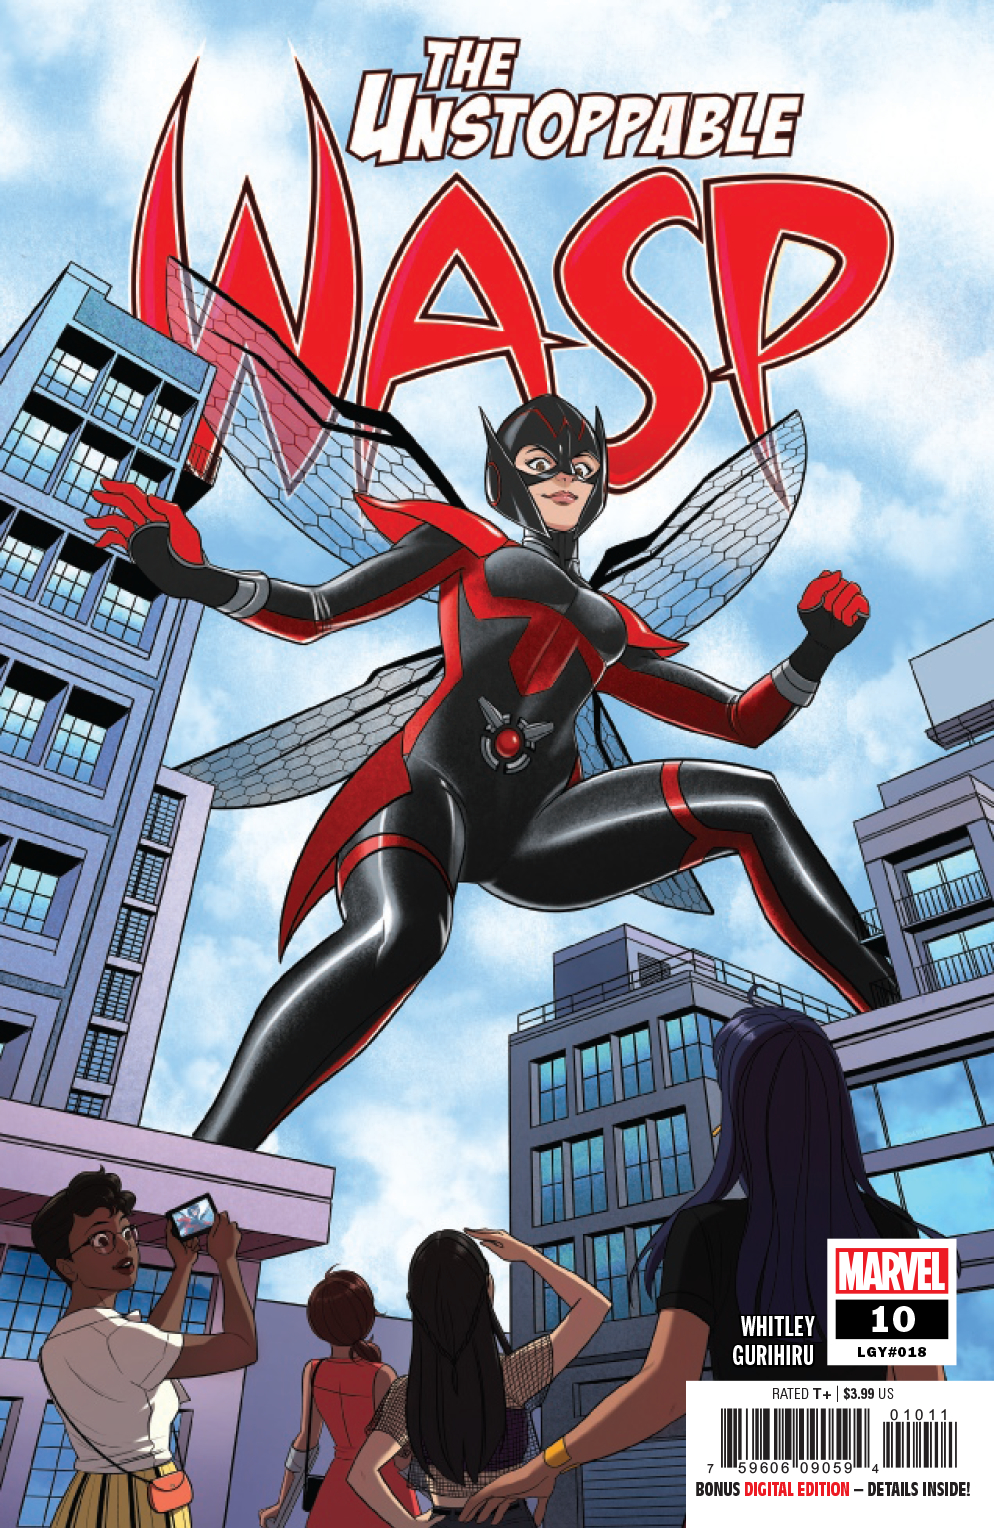 UNSTOPPABLE WASP #10